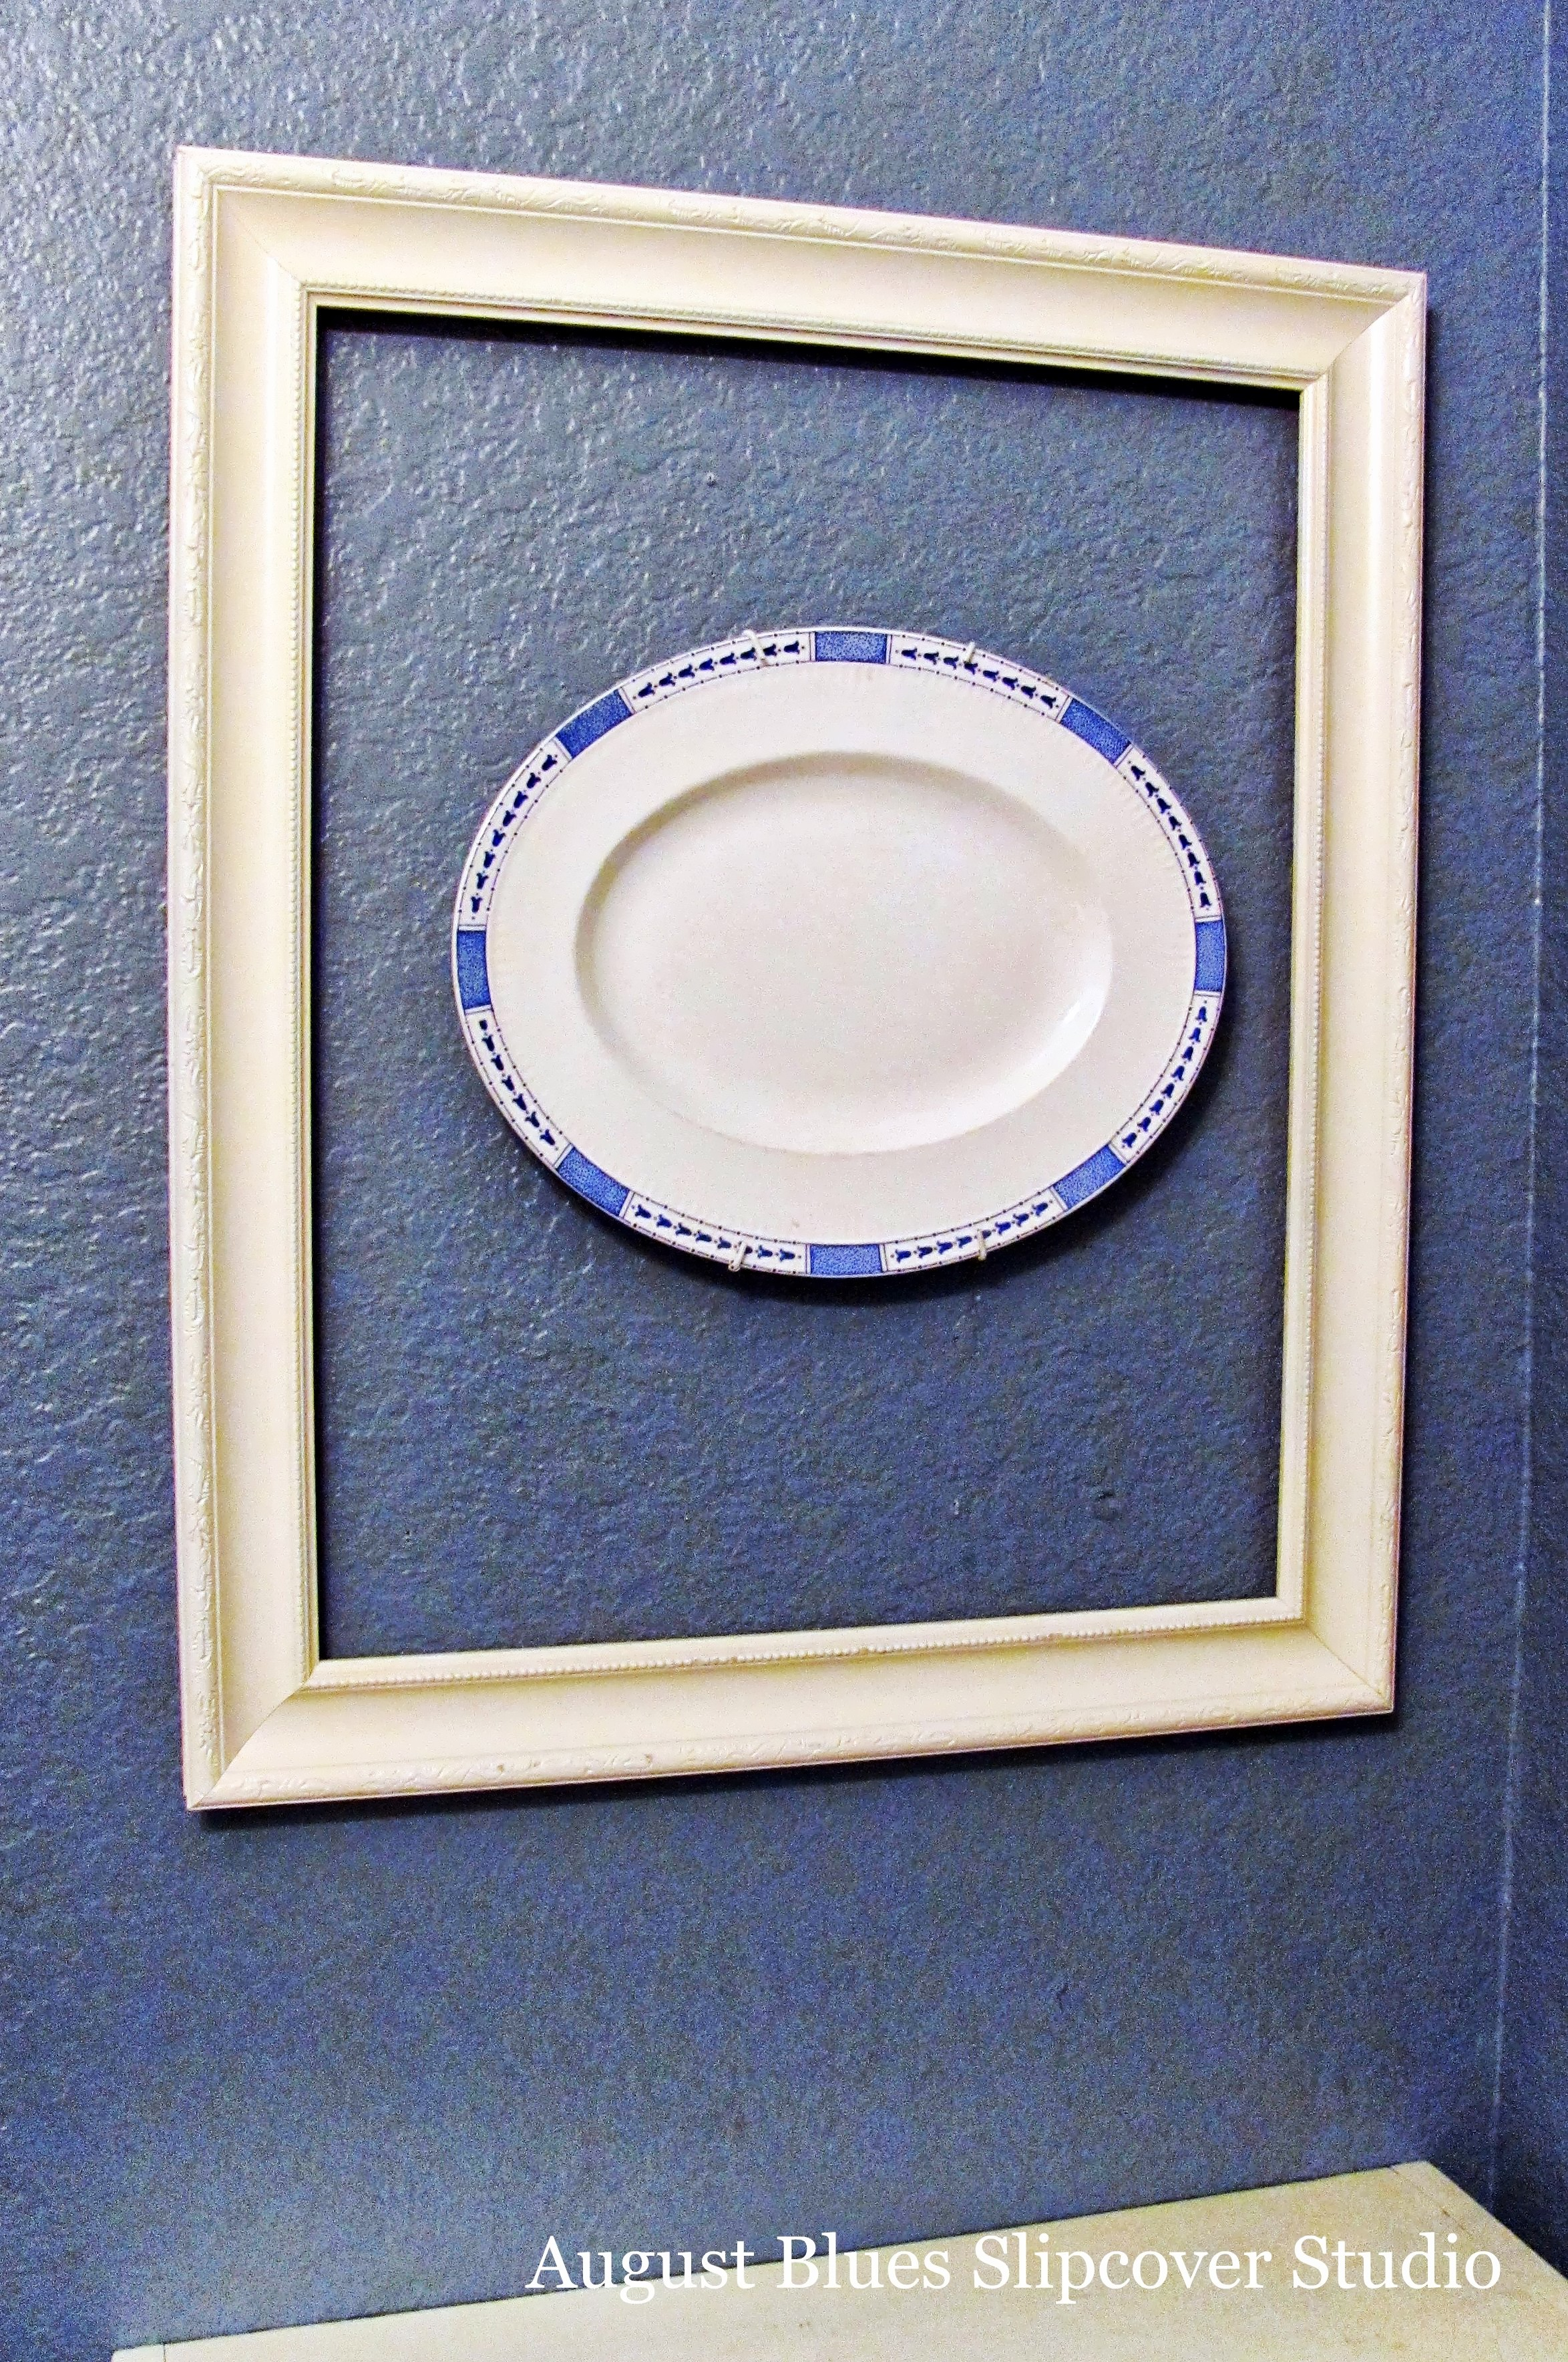 August Blues - Frame and Plate